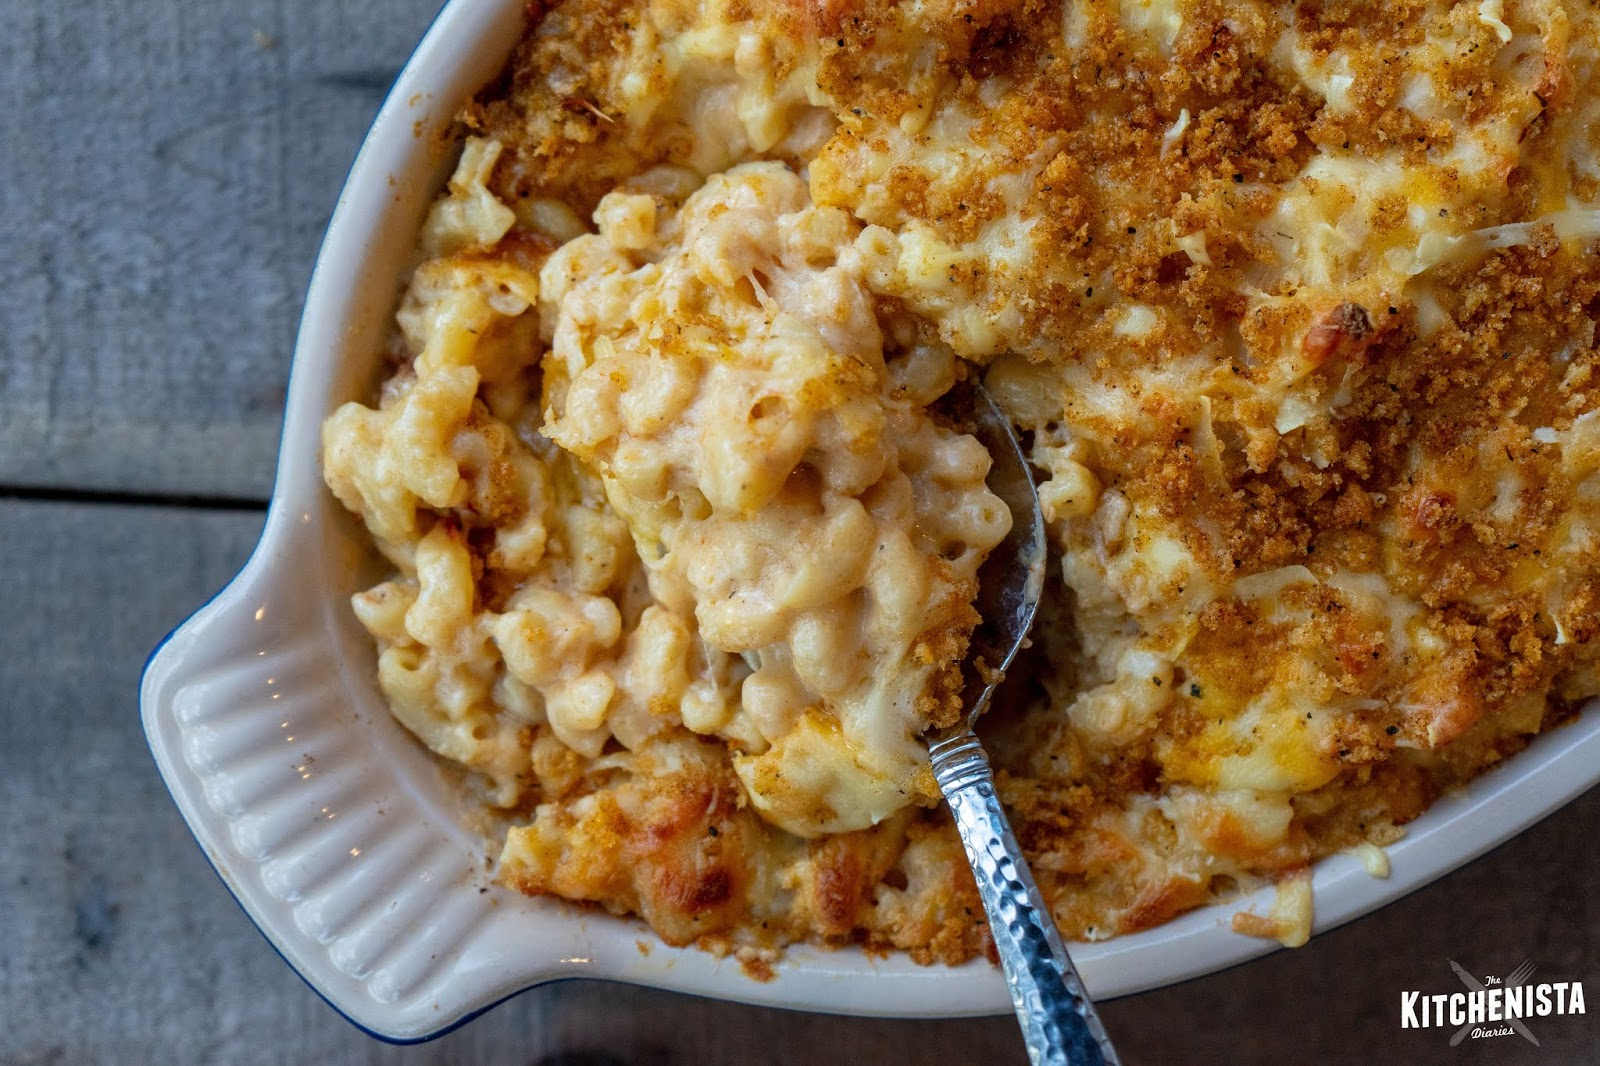 Classic Creamy Baked Mac Cheese The Kitchenista Diaries